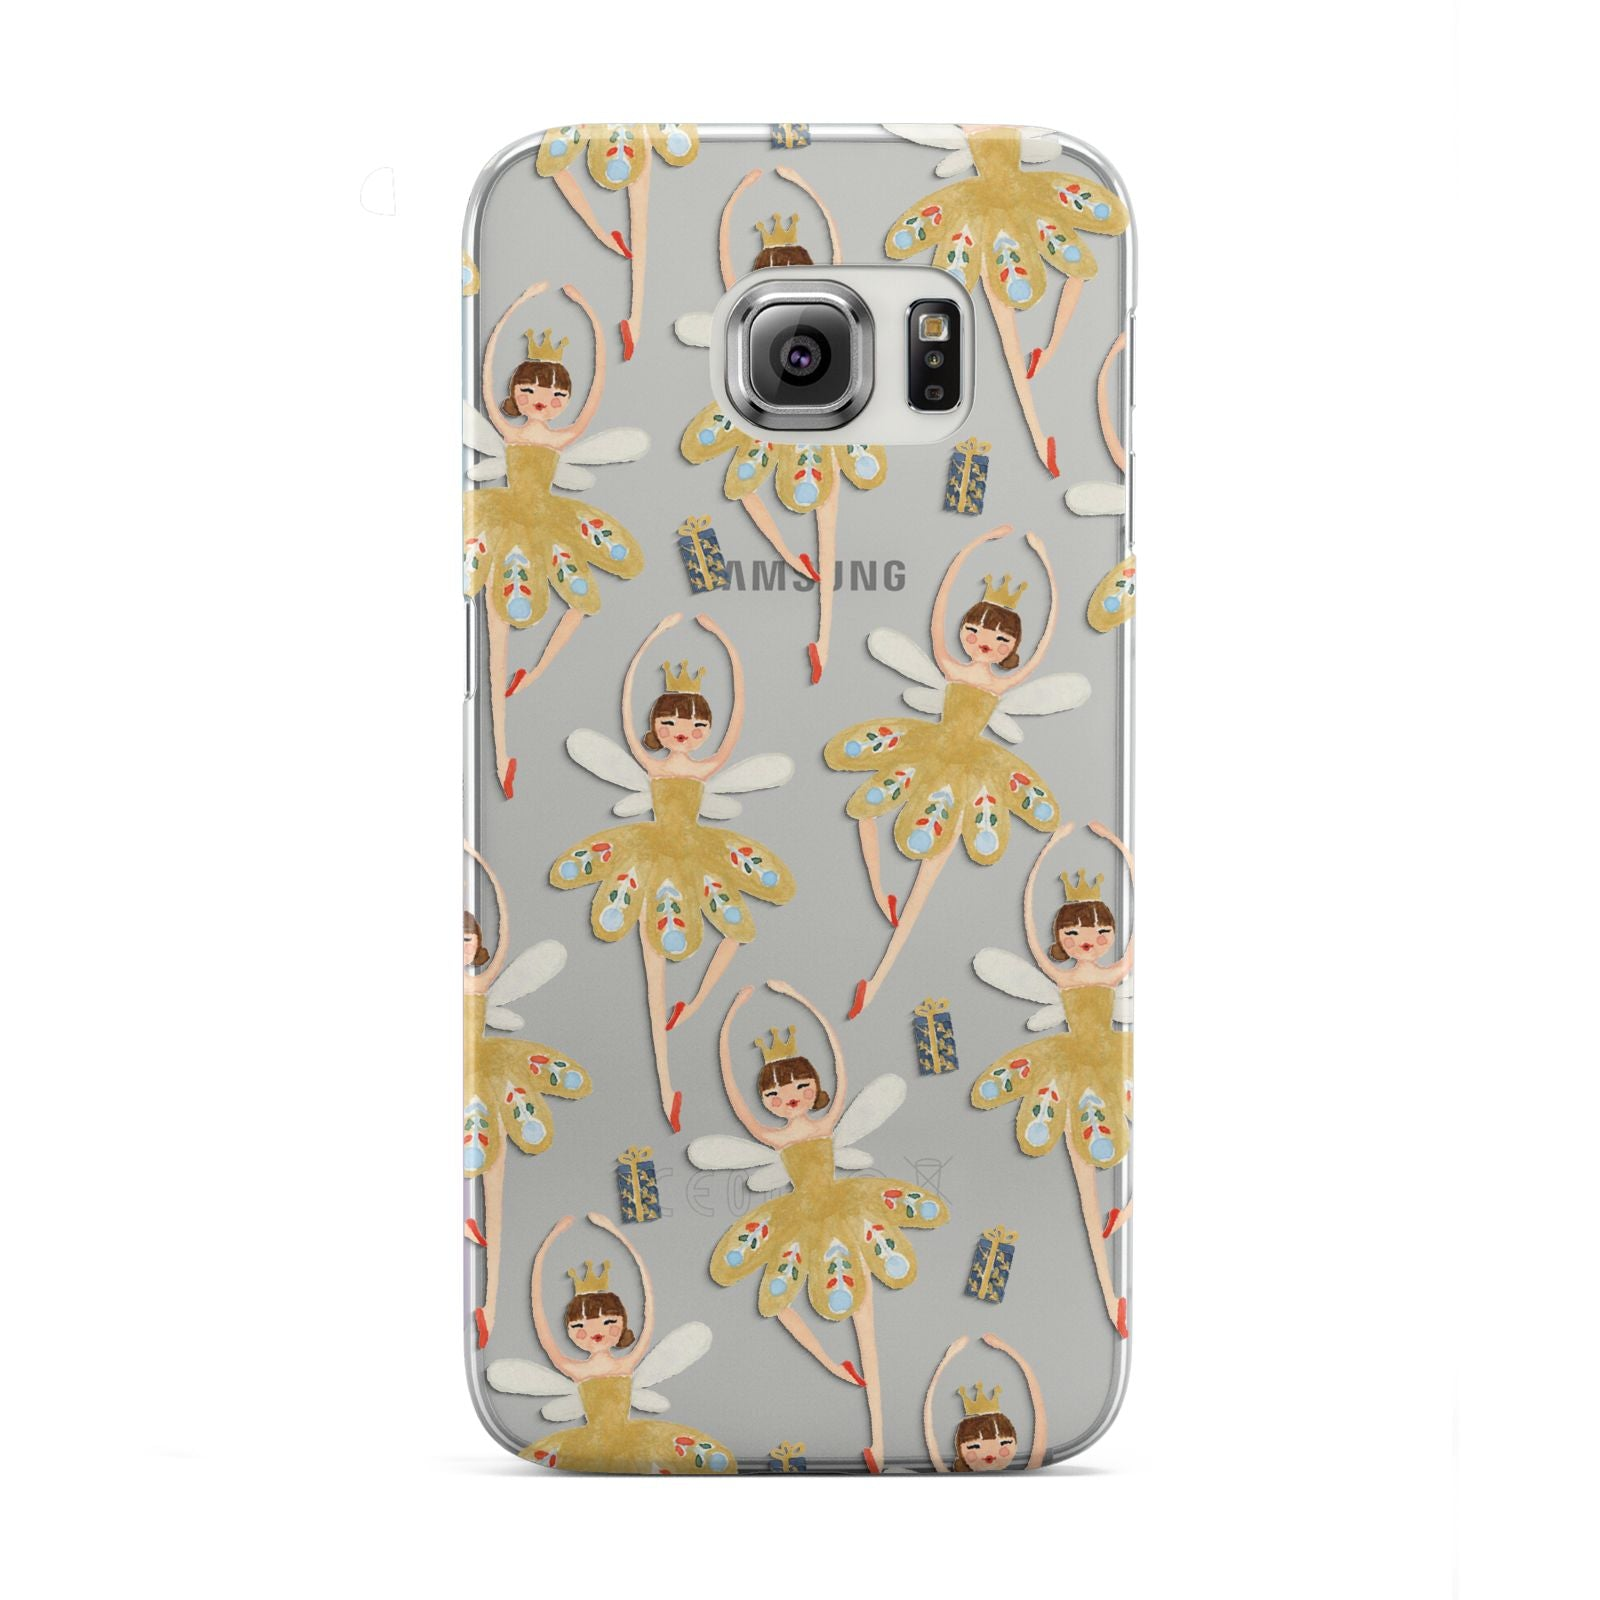 Dancing ballerina princess Samsung Galaxy S6 Edge Case